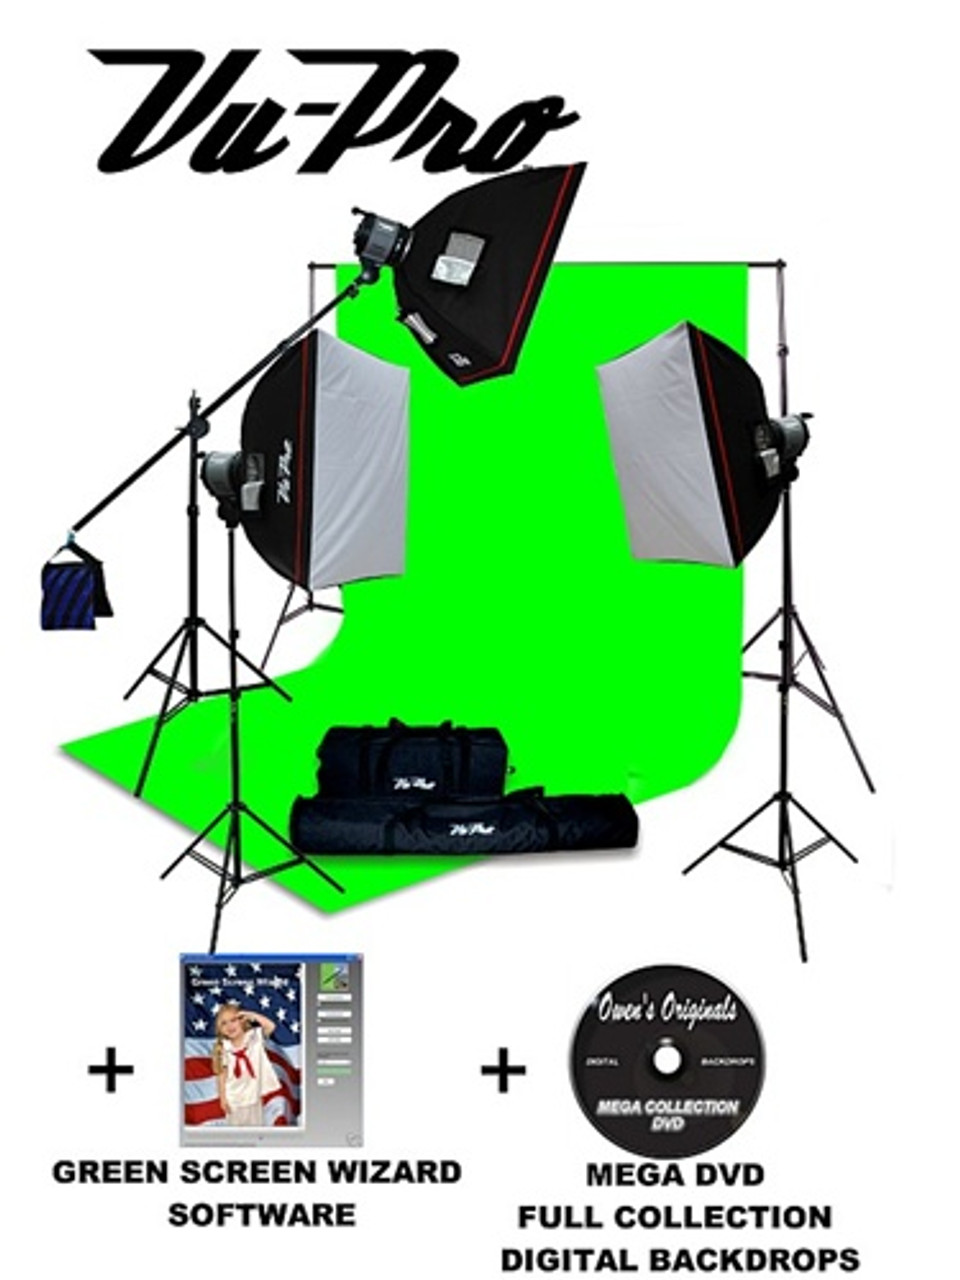 vu pro complete digital pro photography studio package with 3000 watt softbox lighting kit backdrop stand light stands green screen software